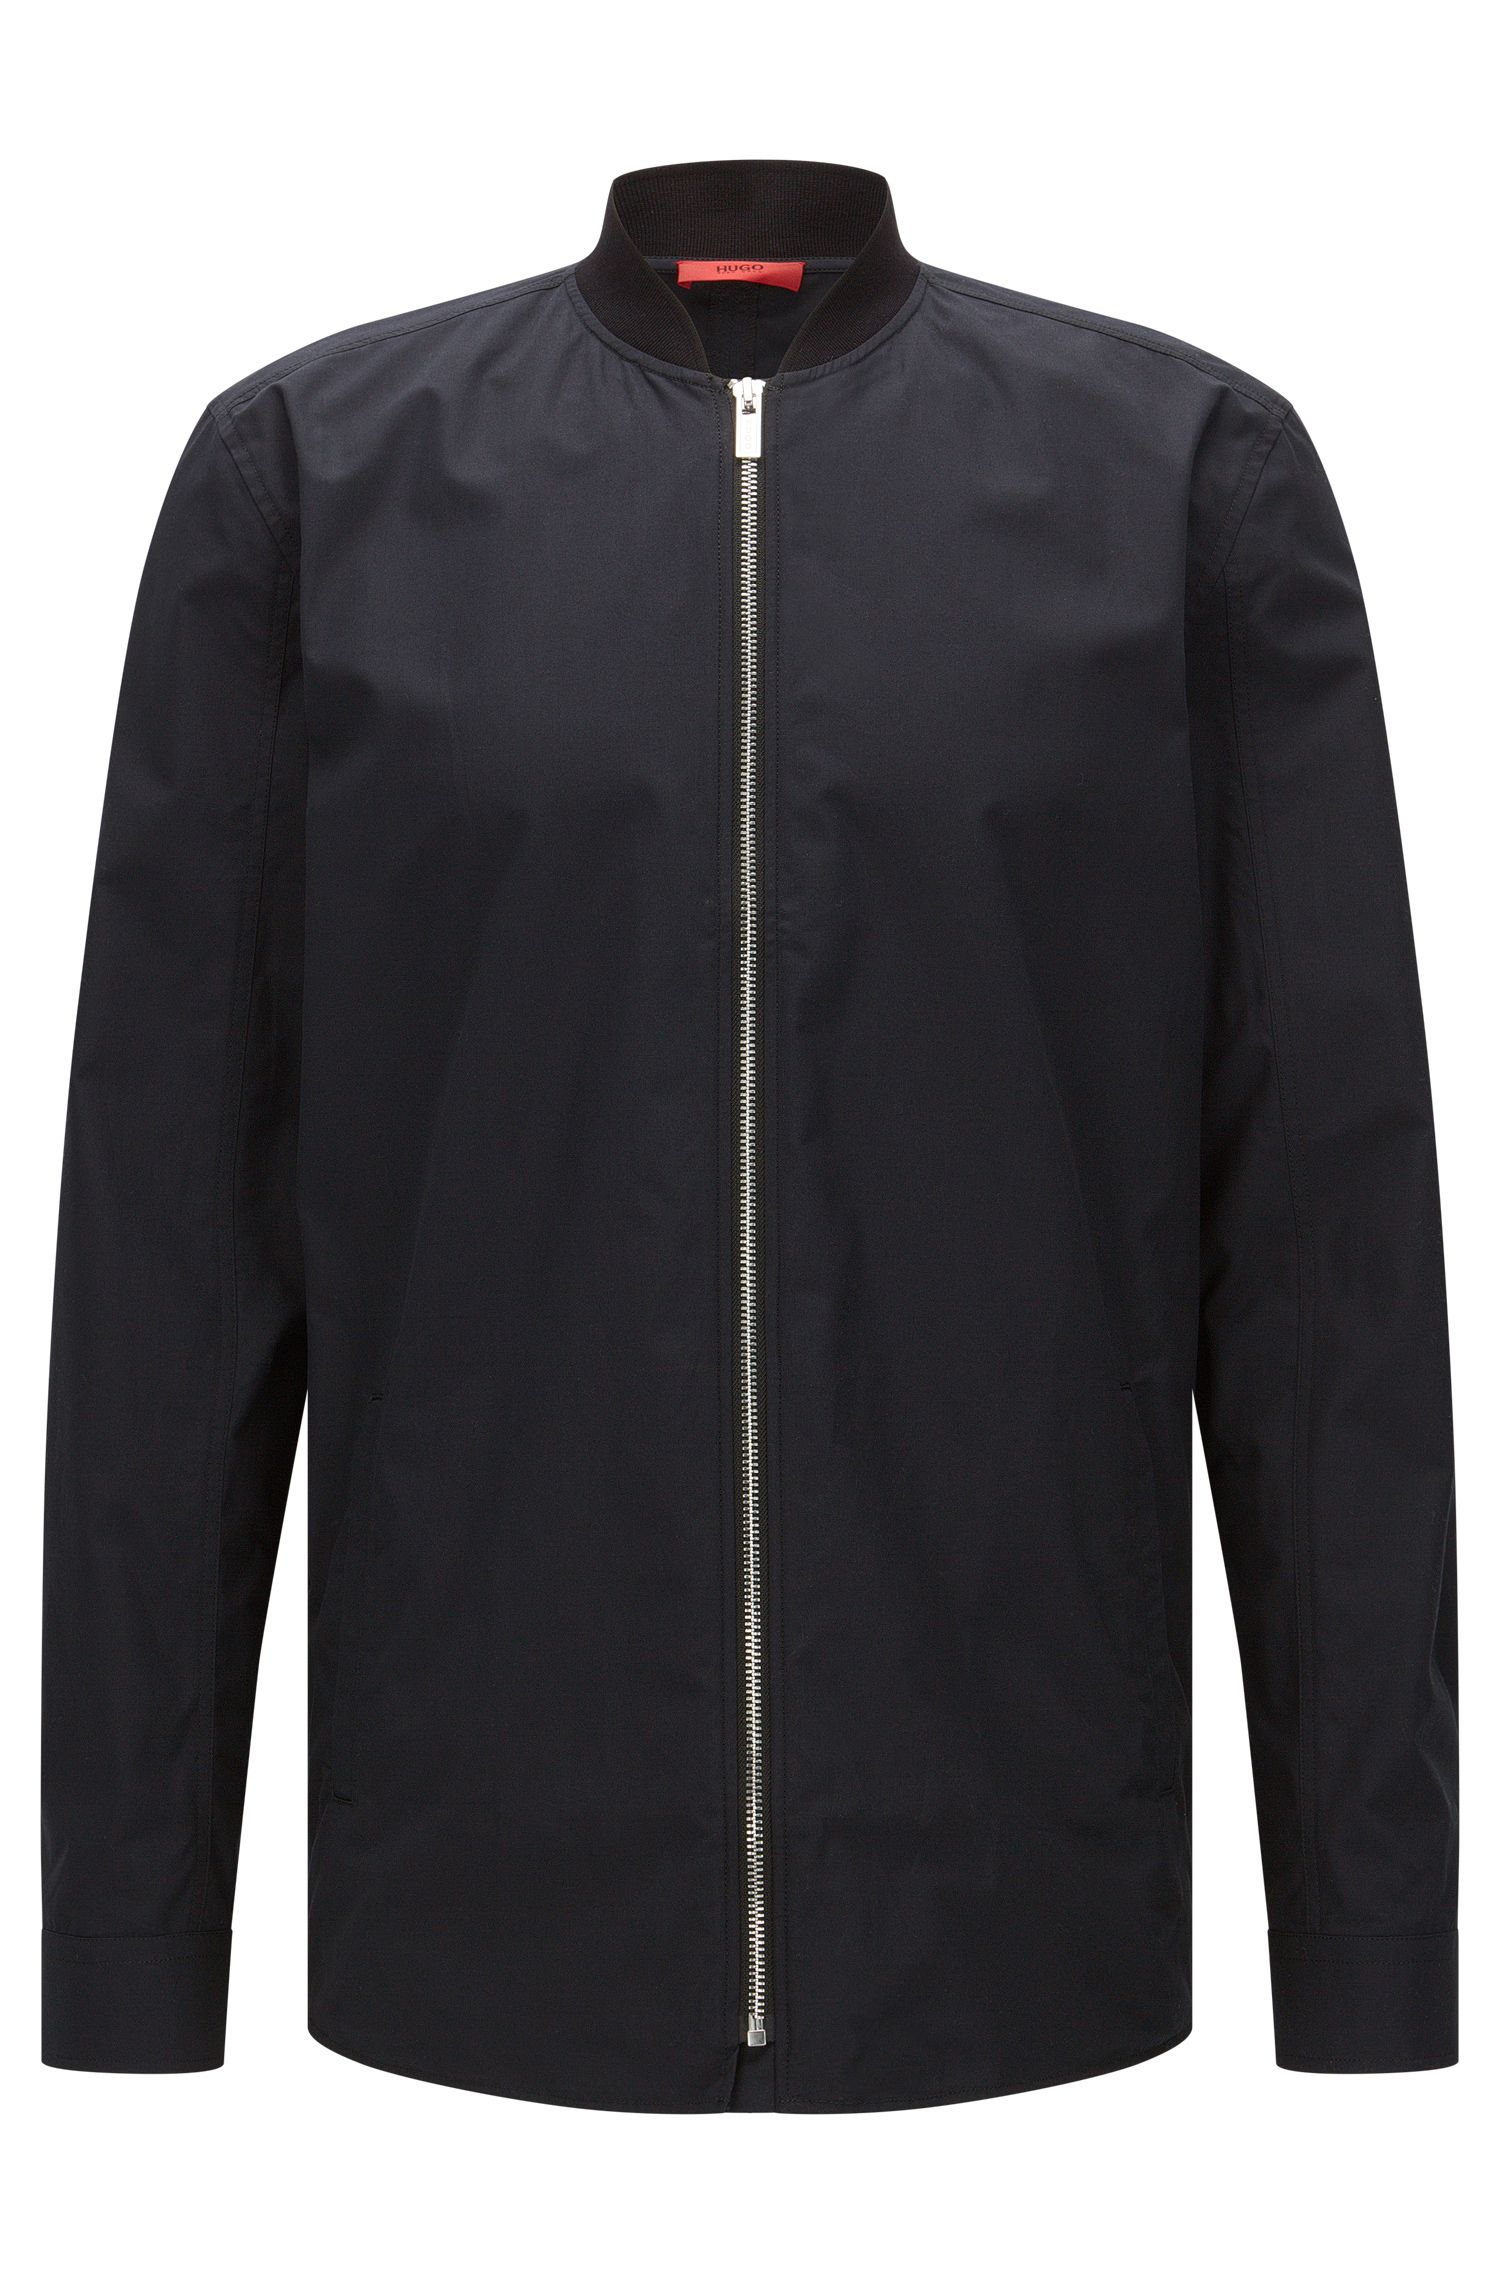 Oversized-fit shirt in cotton in bomber jacket style: 'Esuper'